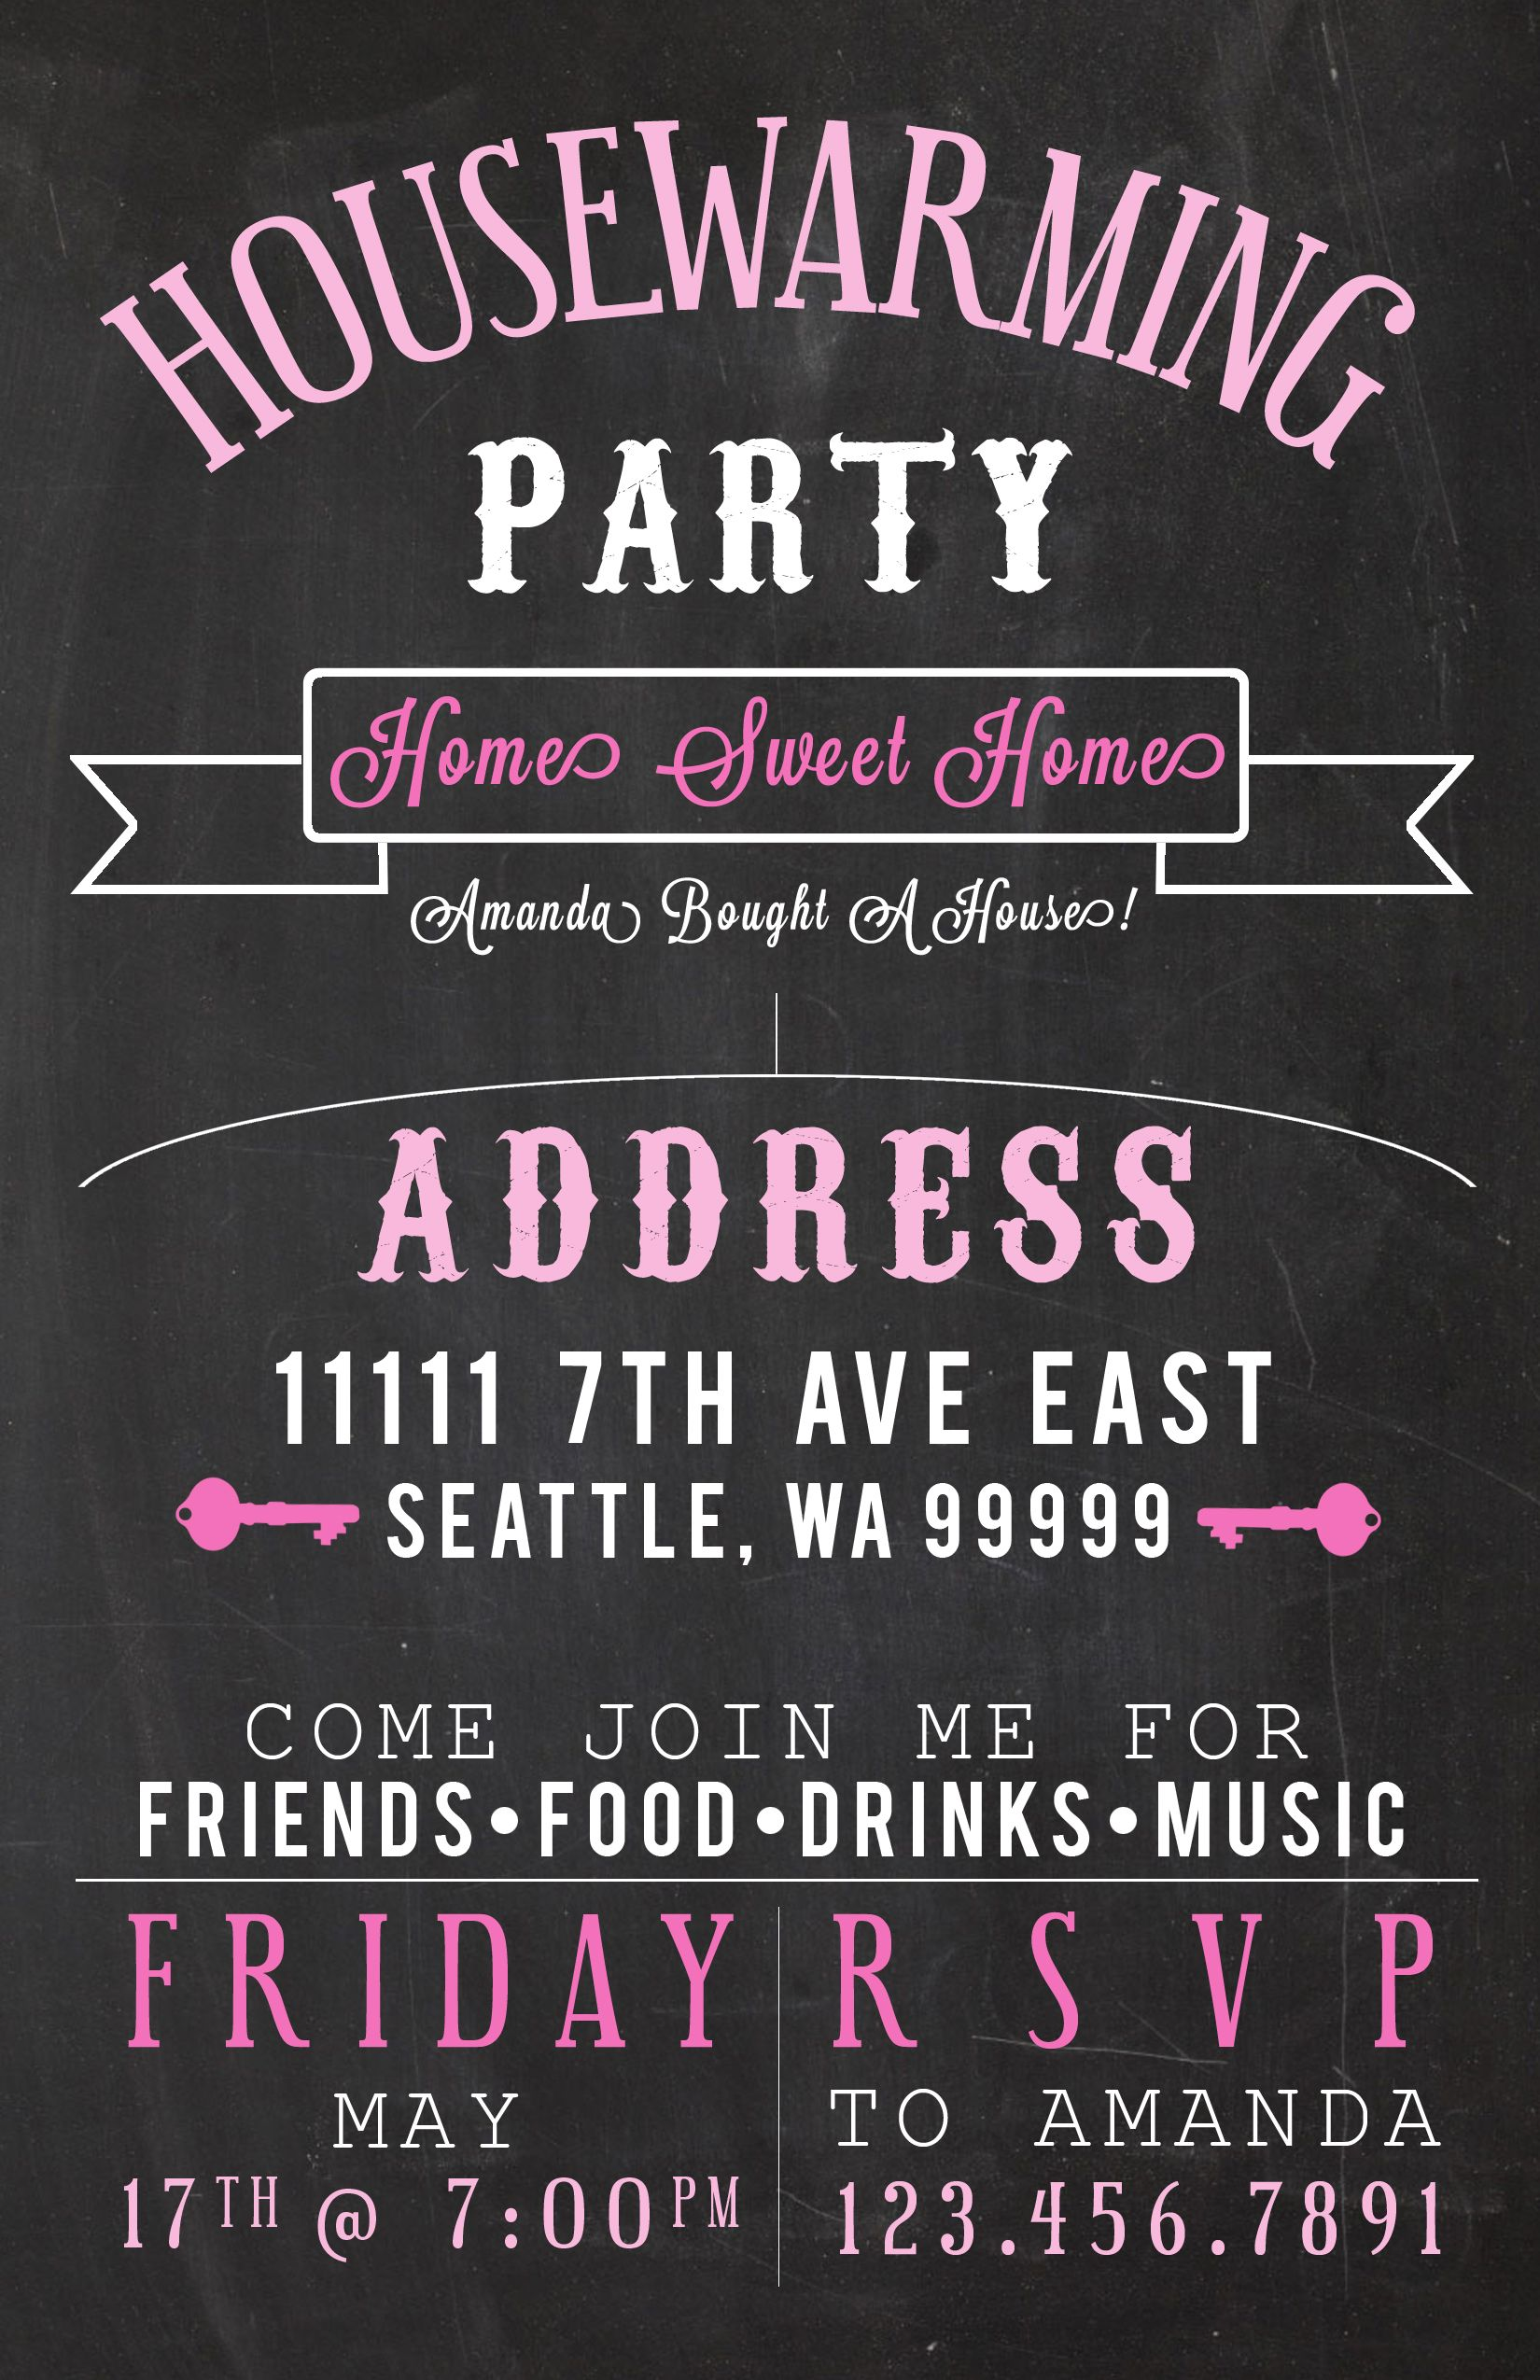 Housewarming Party Invites Amandarobinett